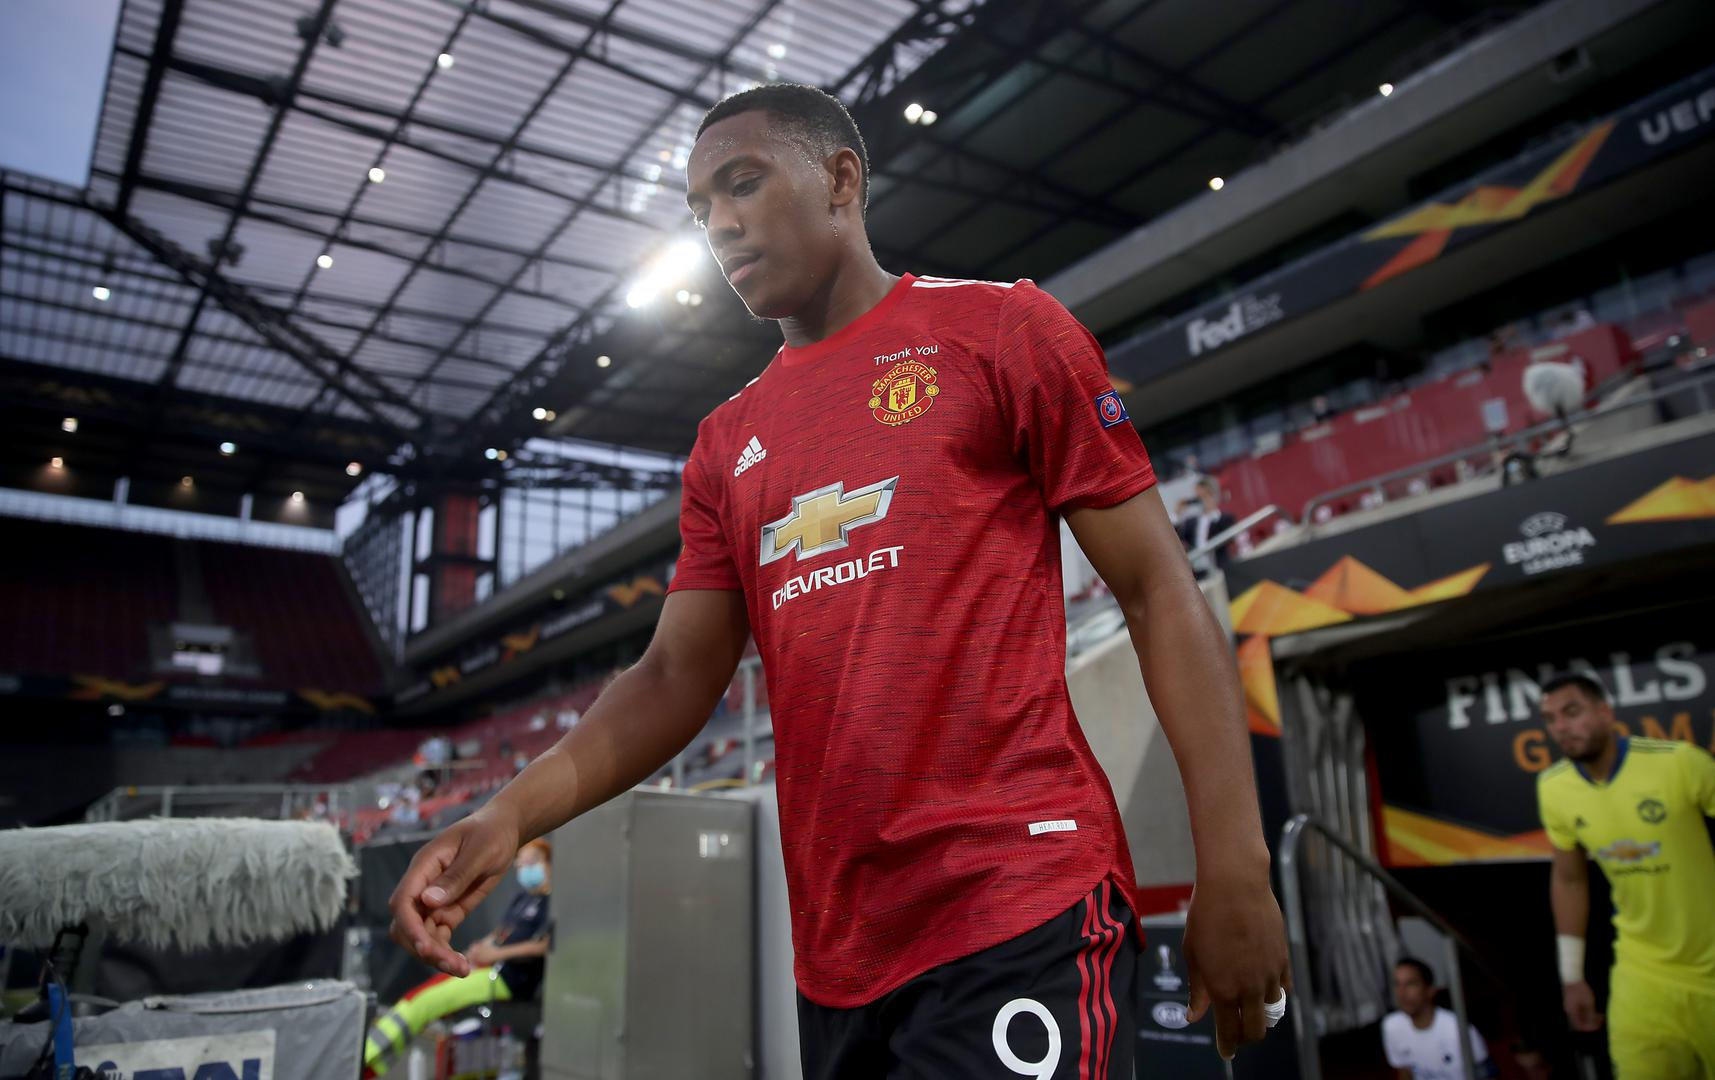 Anthony Martial walks out at Stadion Koln